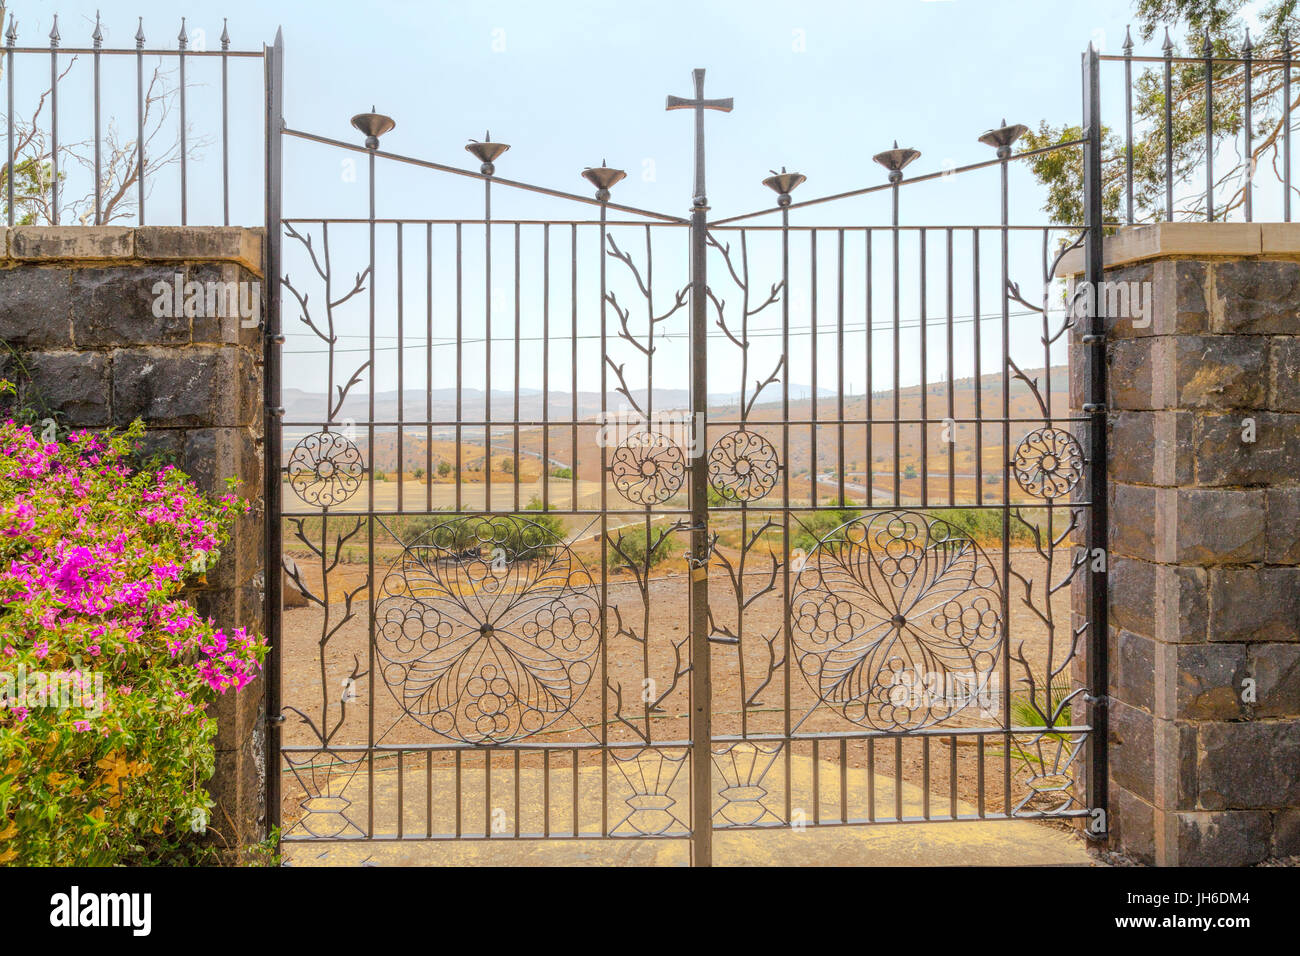 Wrought-iron fence with floral design and cross on top in the Cloister Garden of Beatitudes Church, overlooking Stock Photo